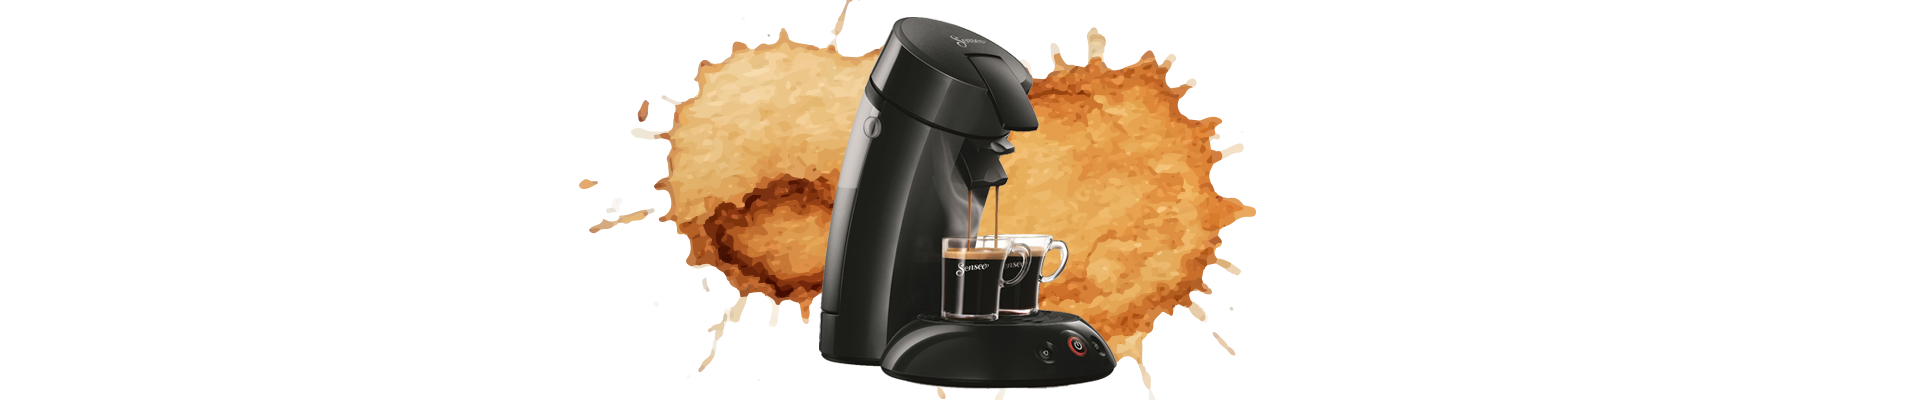 single serve coffee maker big coffee splatter